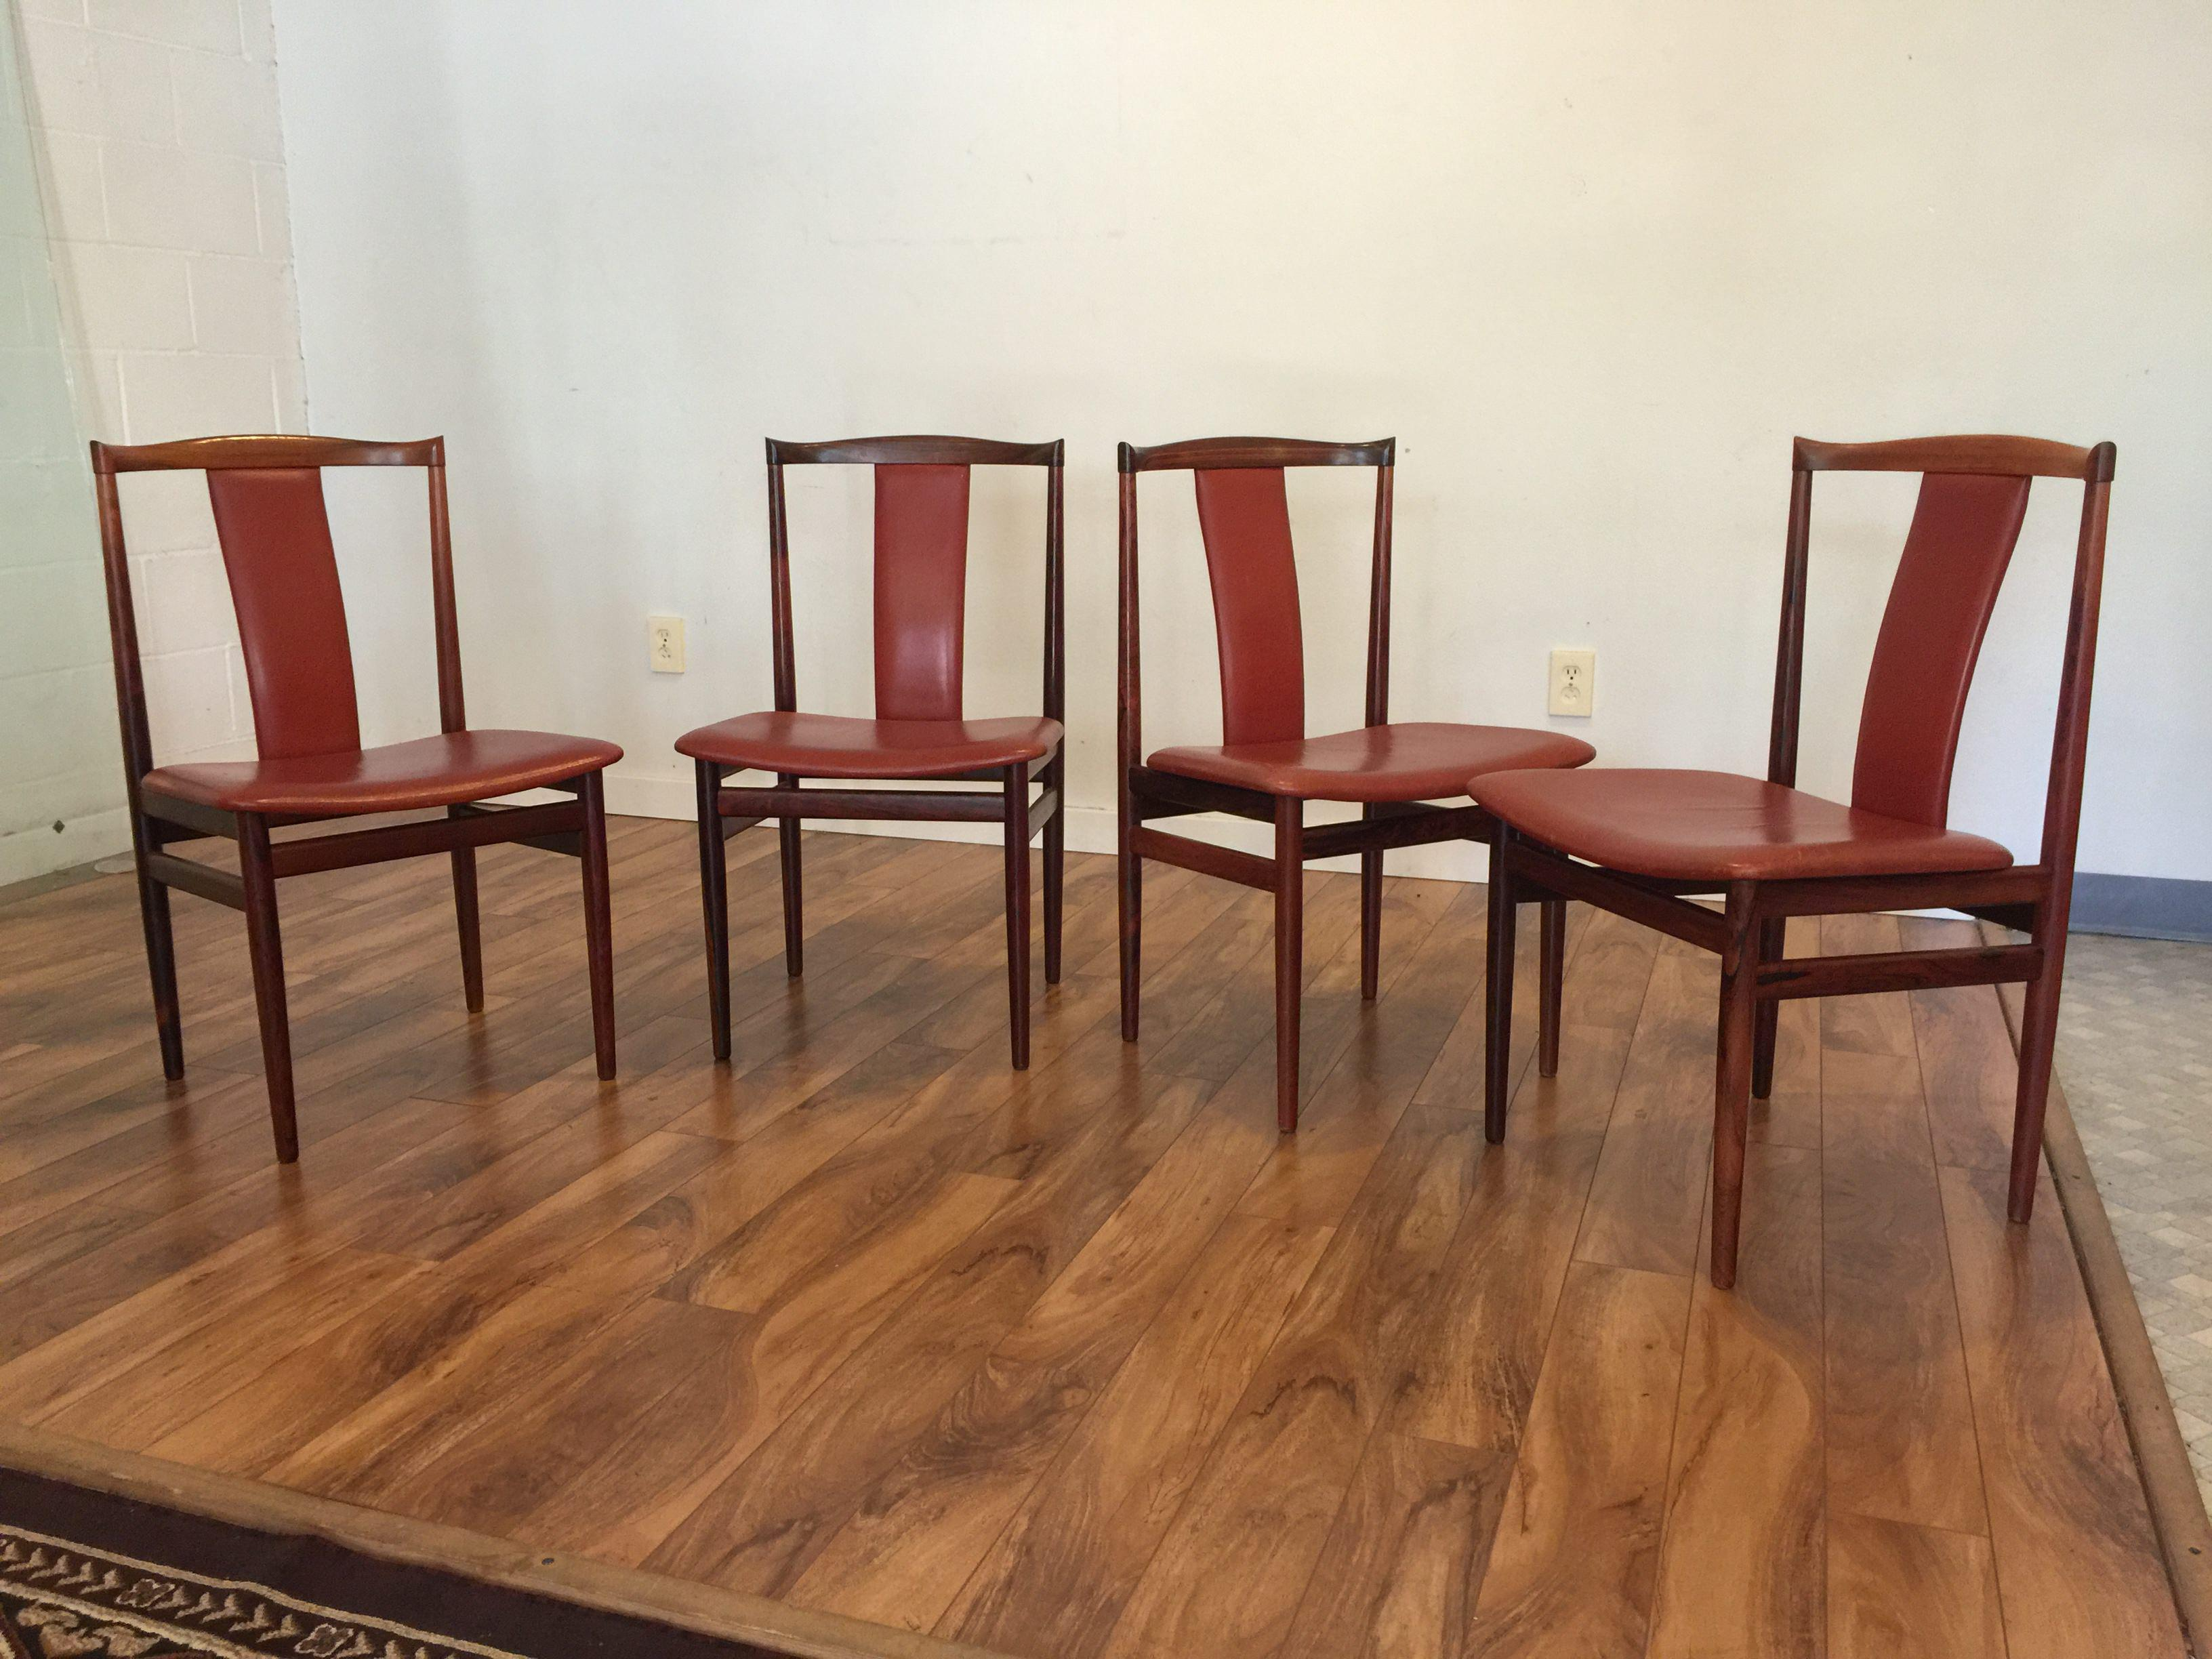 henning sorensen rosewood u0026 leather dining chairs set of 4 image 3 of 11